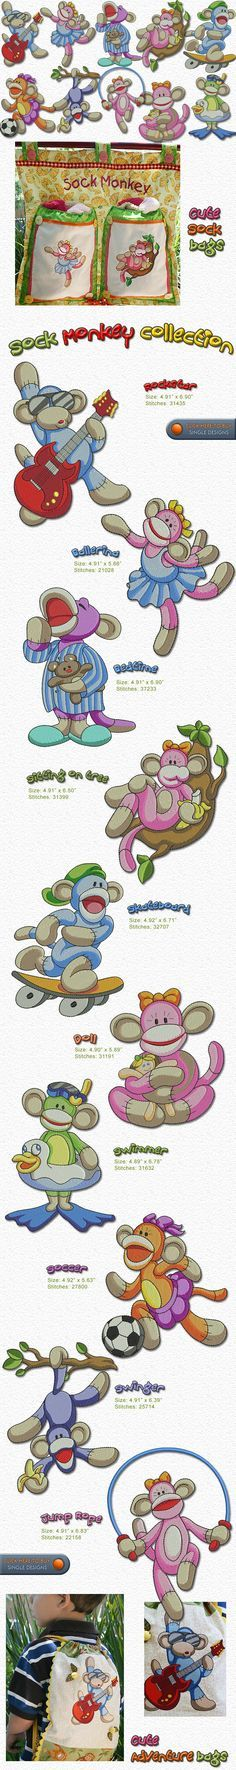 SOCK MONKEY Embroidery Designs Free Embroidery Design Patterns Applique